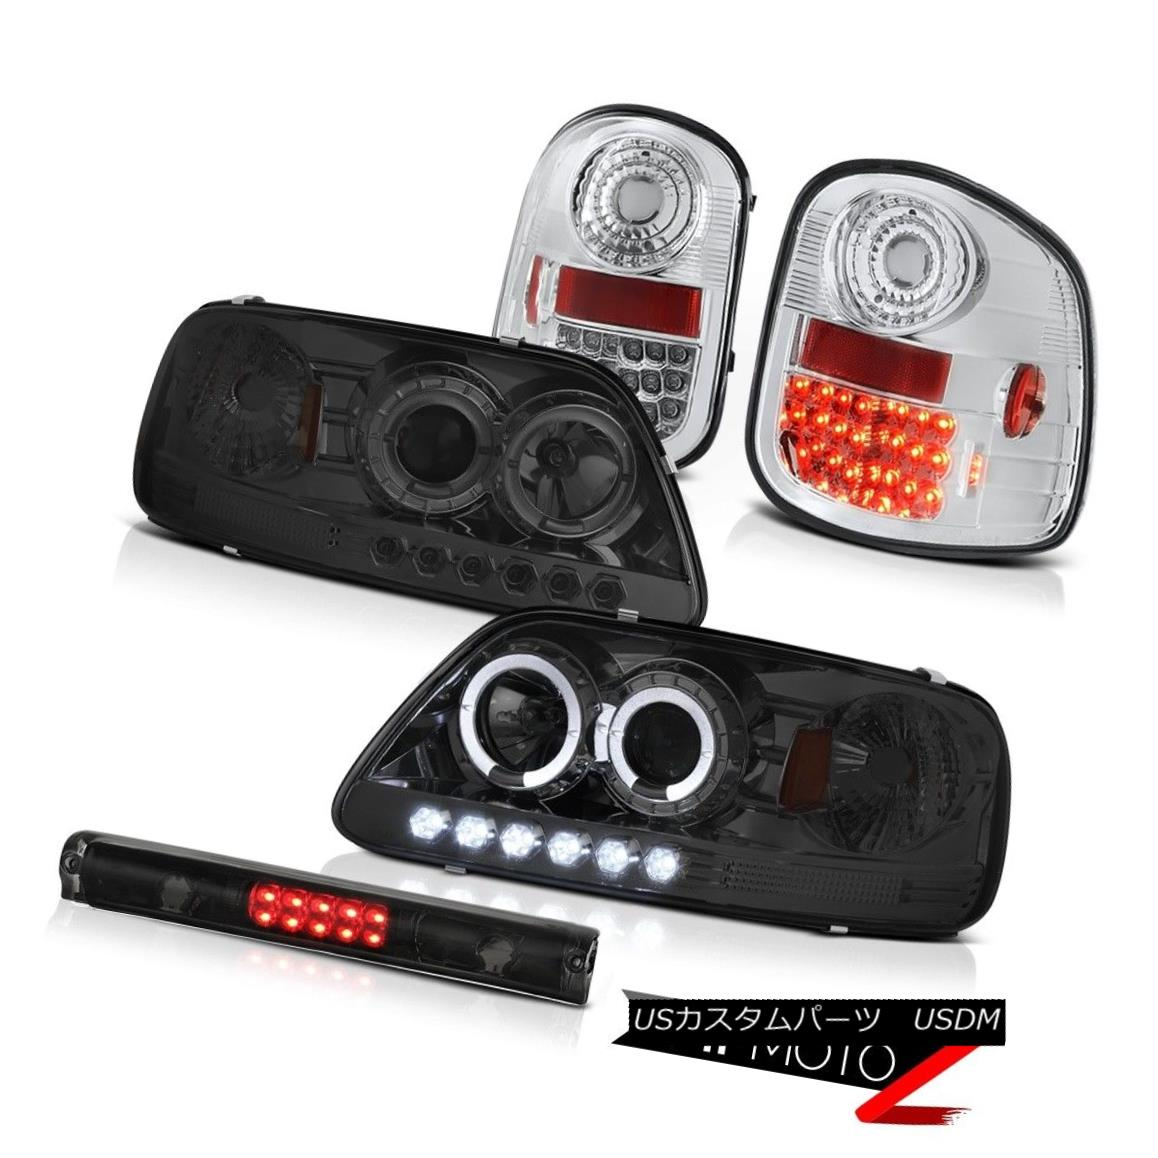 ヘッドライト Dark Halo LED Headlamps Bulb Brake Tail Lights 1997-2003 F150 Flareside Hertiage ダークハローLEDヘッドライトバルブブレーキテールライト1997-2003 F150 Flareside Heritage